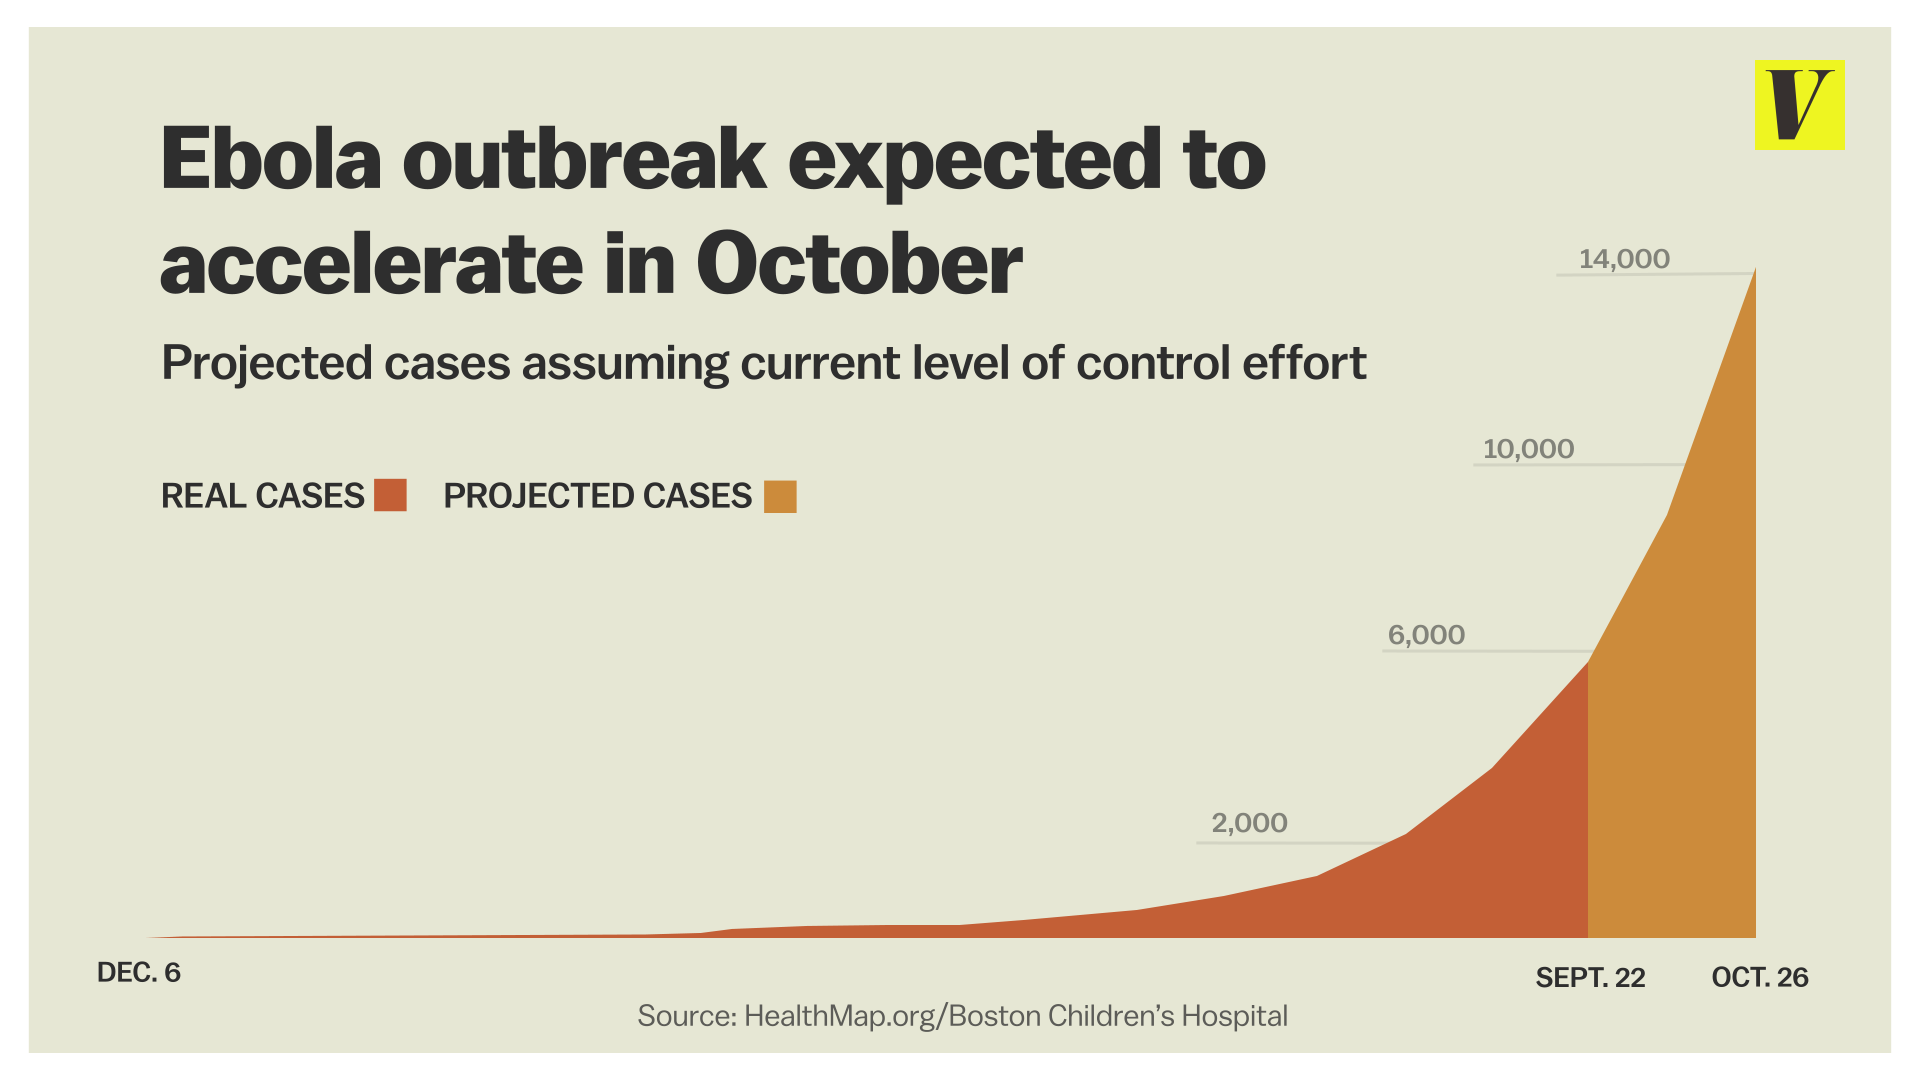 CDC ebola projection